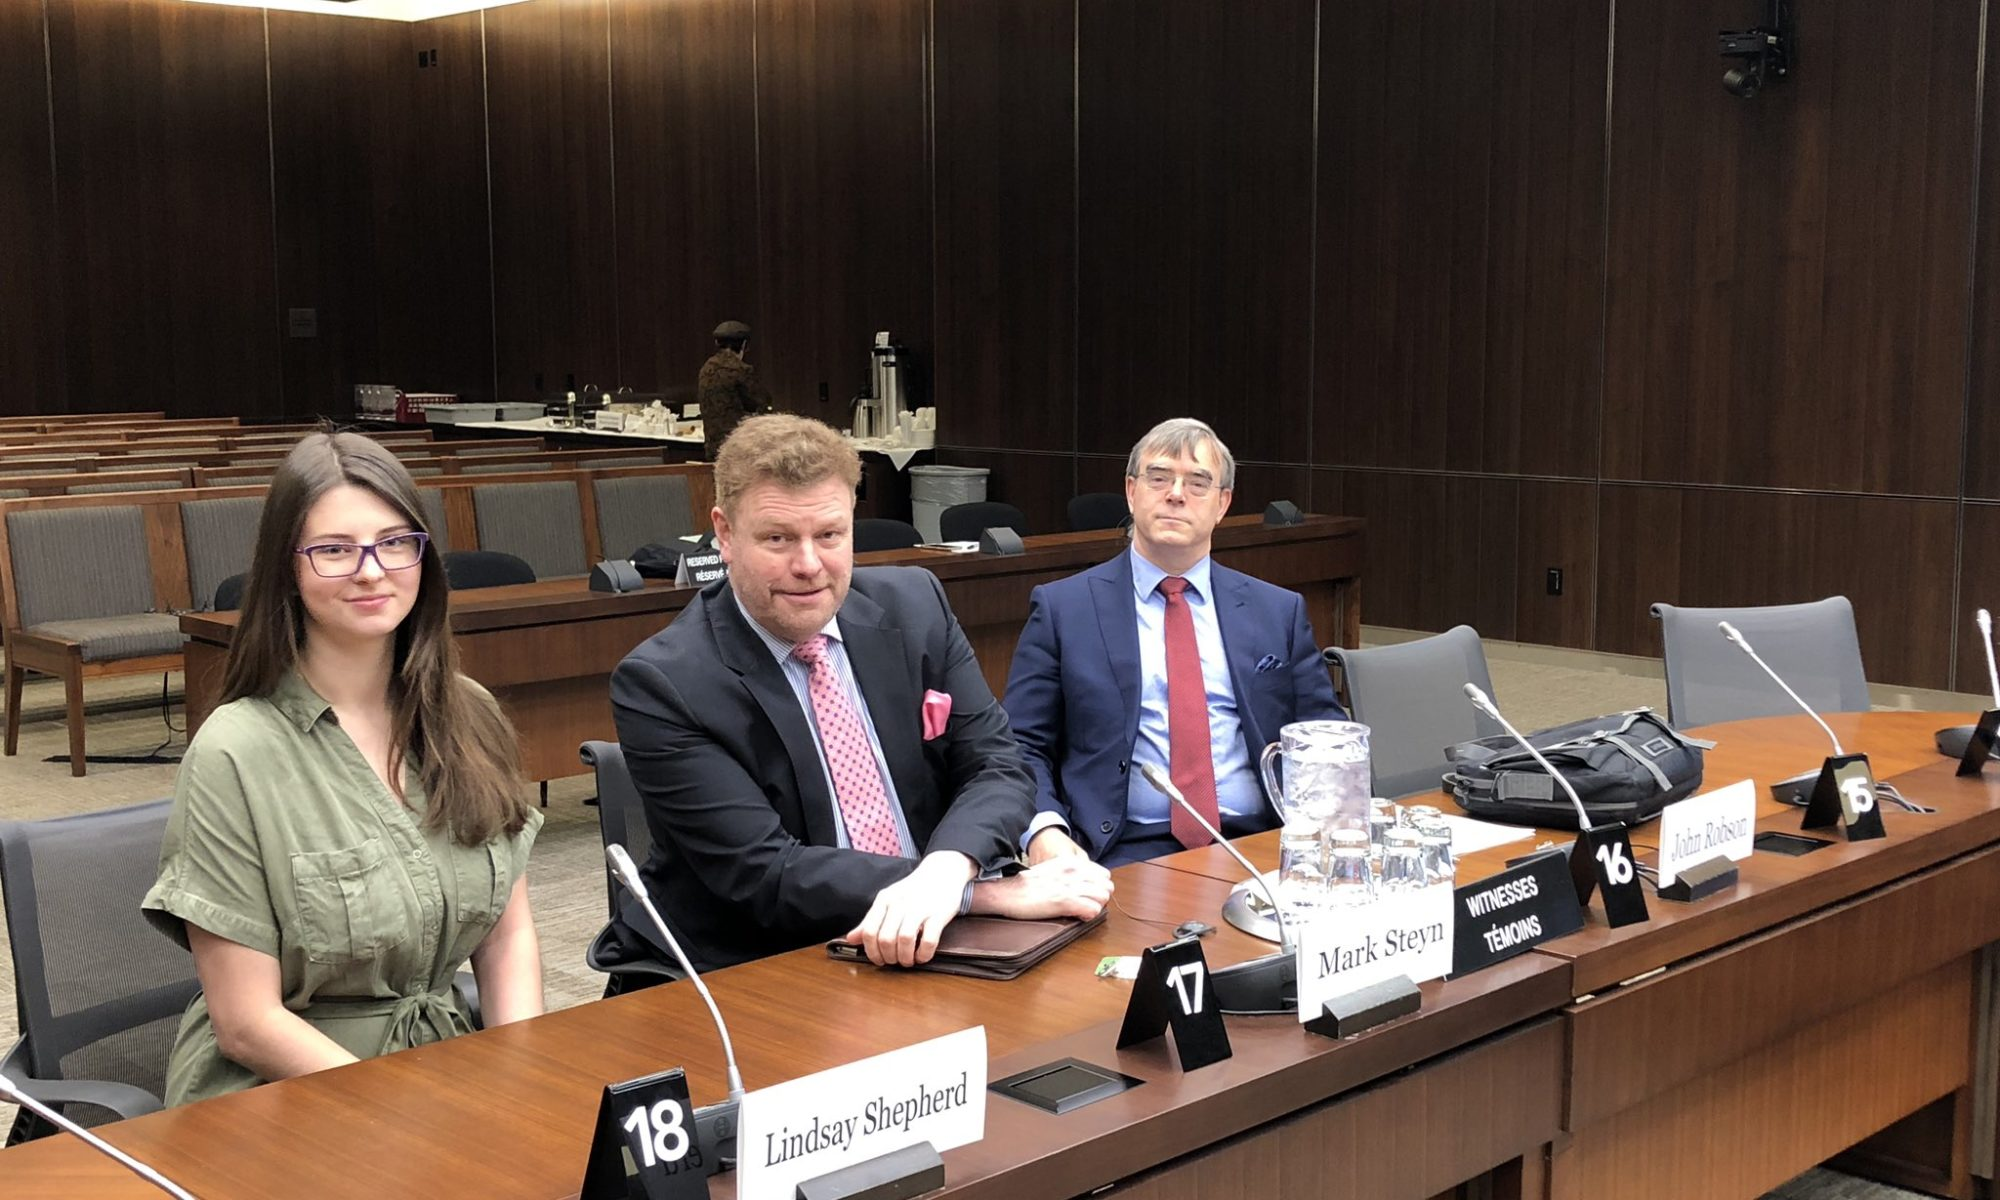 Lindsay Shepherd, Mark Steyn and John Robson before their testimony before the House of Commons' Standing Committee on Justice and Human Rights.